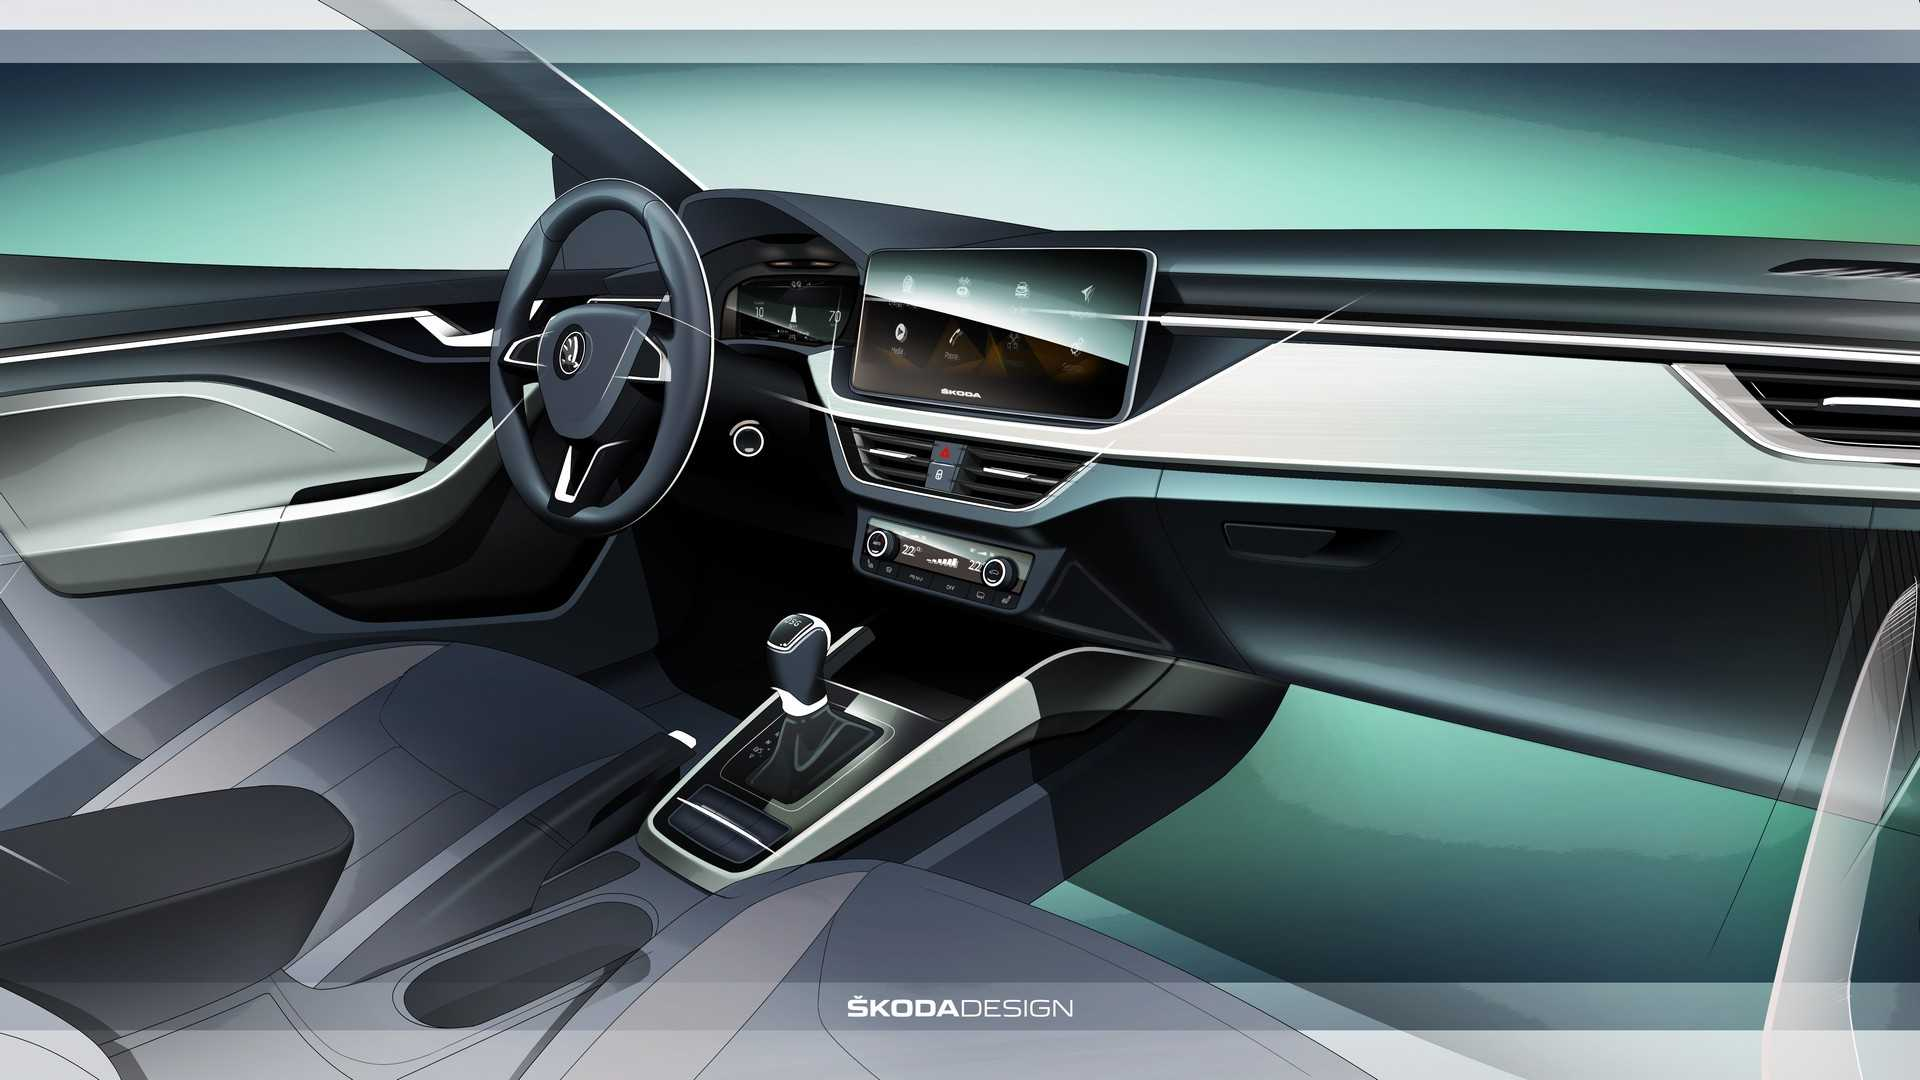 skoda-scala-interior-design-sketch